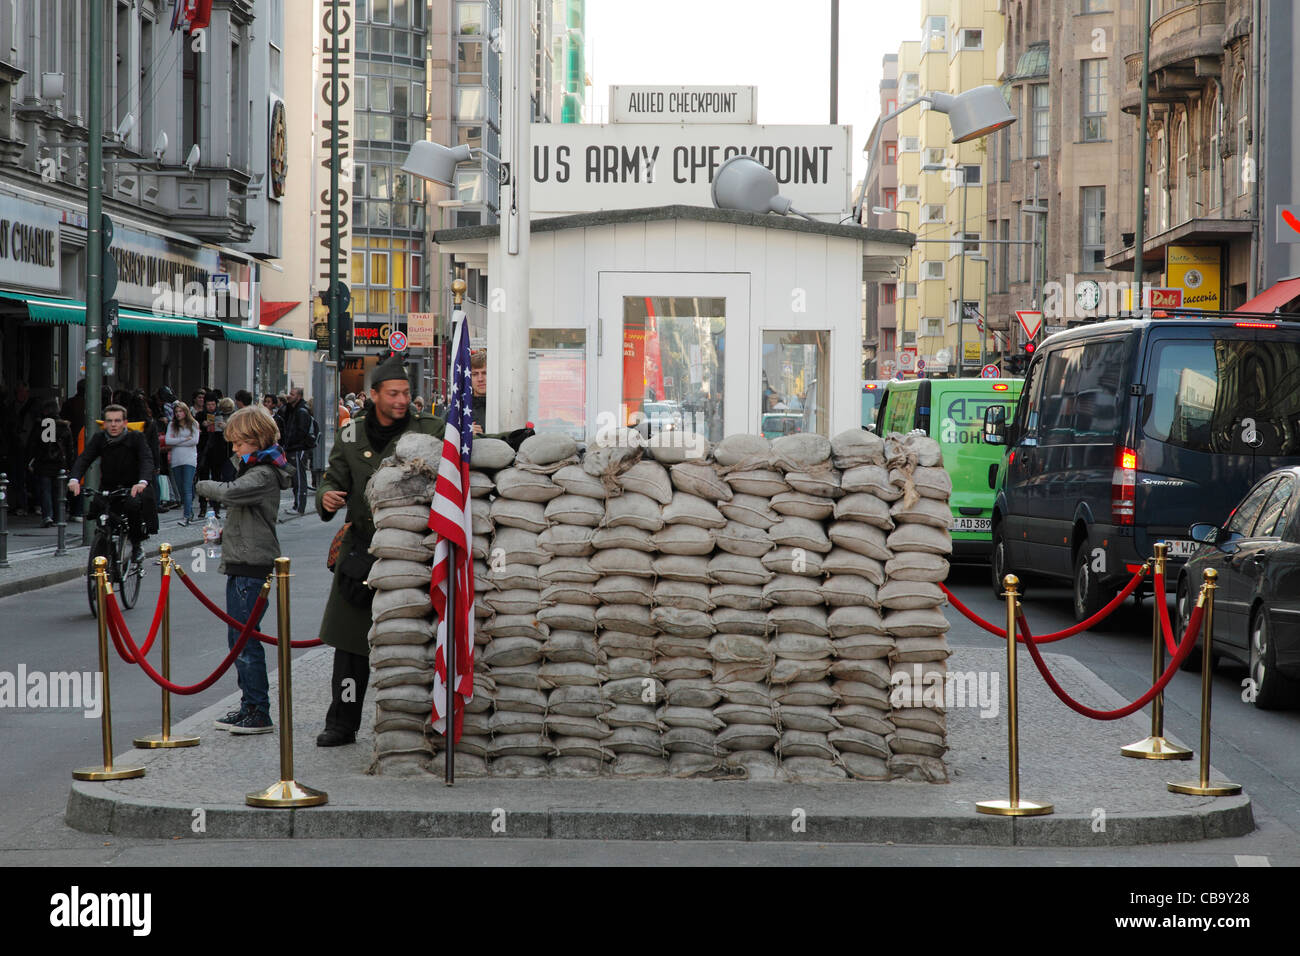 US Army checkpoint Charlie in Berlin, Germany Stock Photo